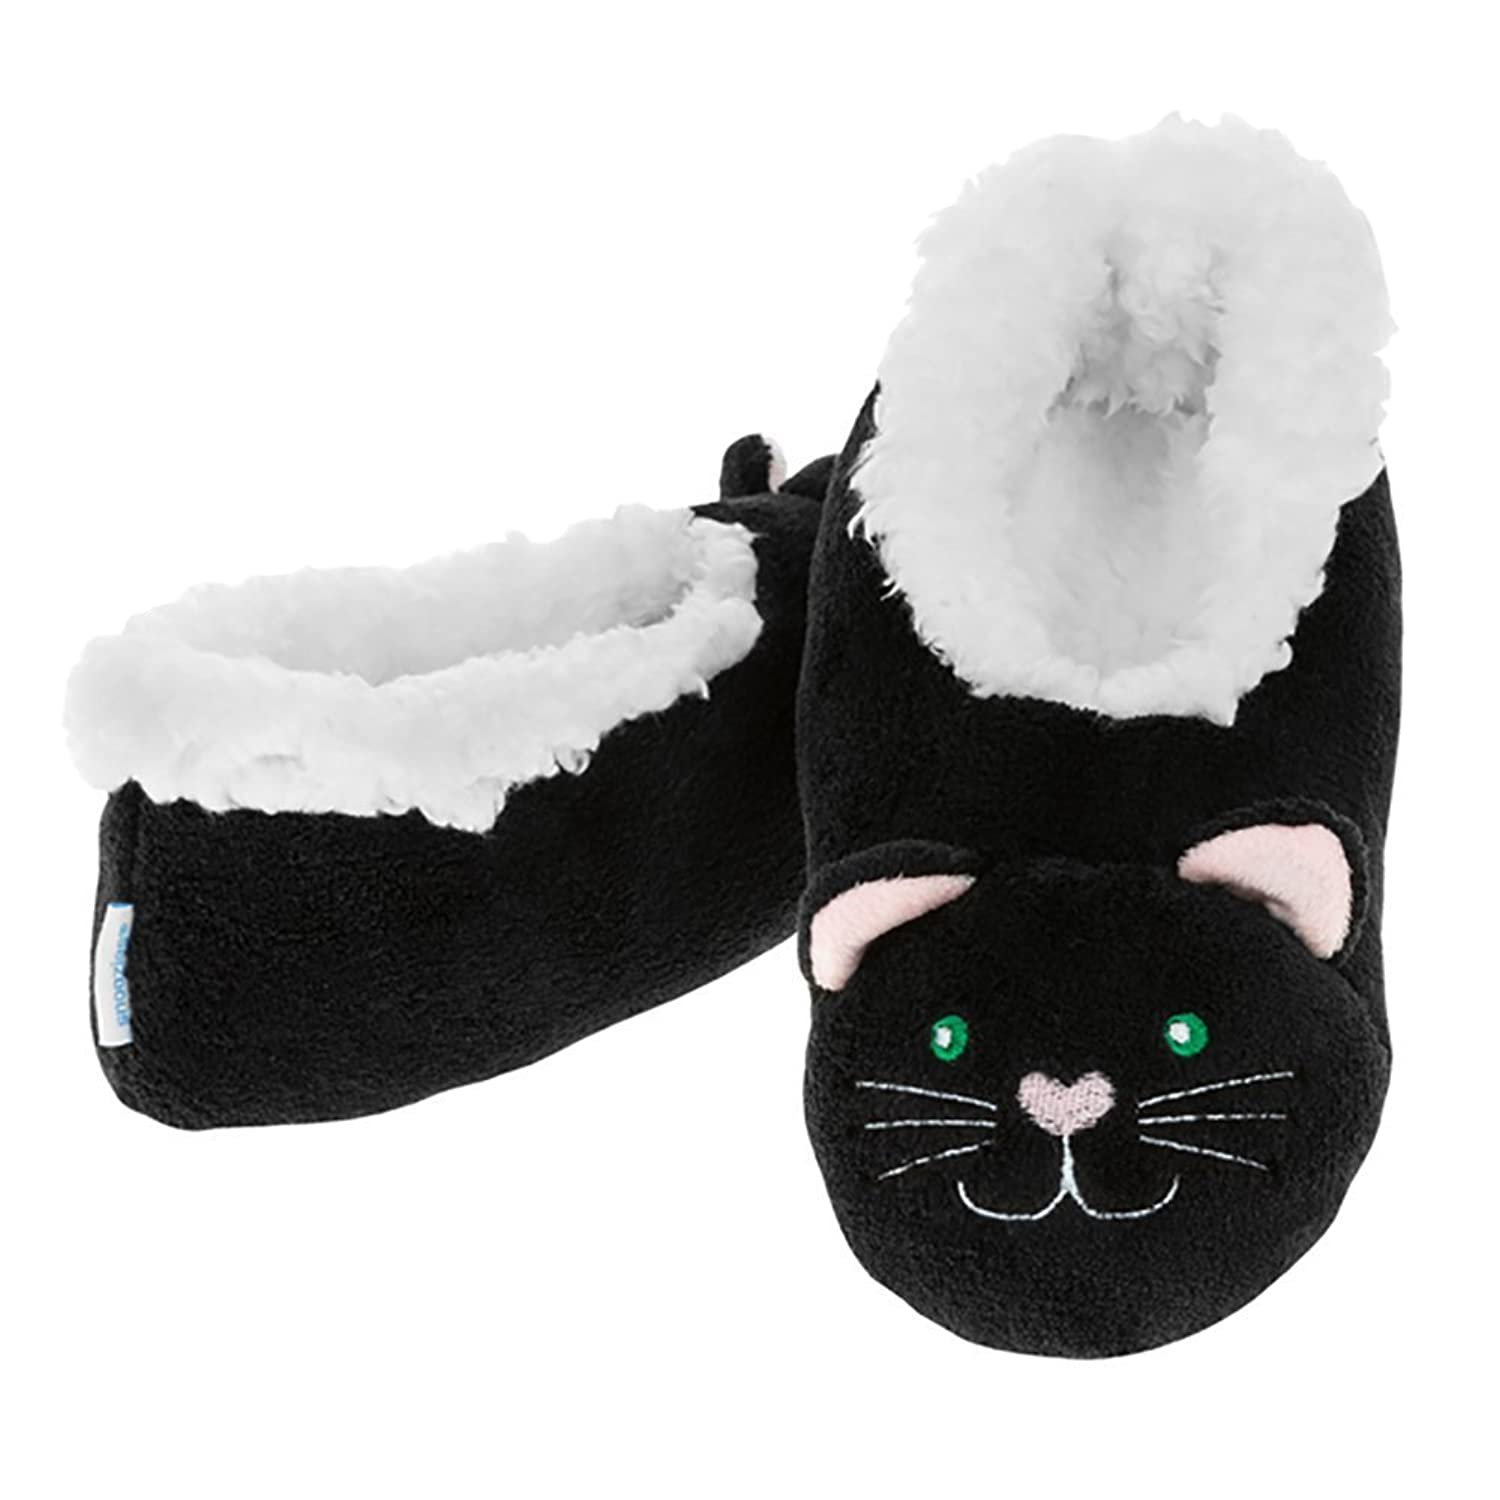 Snoozies Toddler Slippers - Small, Medium, Large, Xlarge